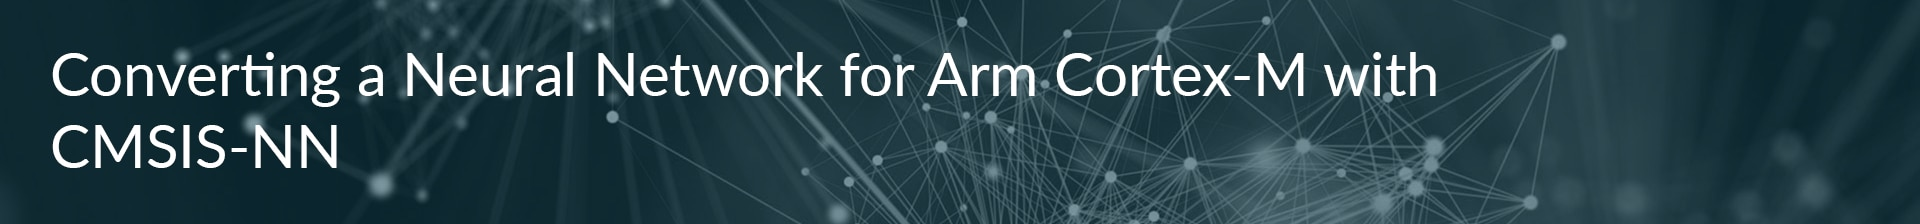 Converting a Neural Network for Arm Cortex-M with CMSIS-NN banner